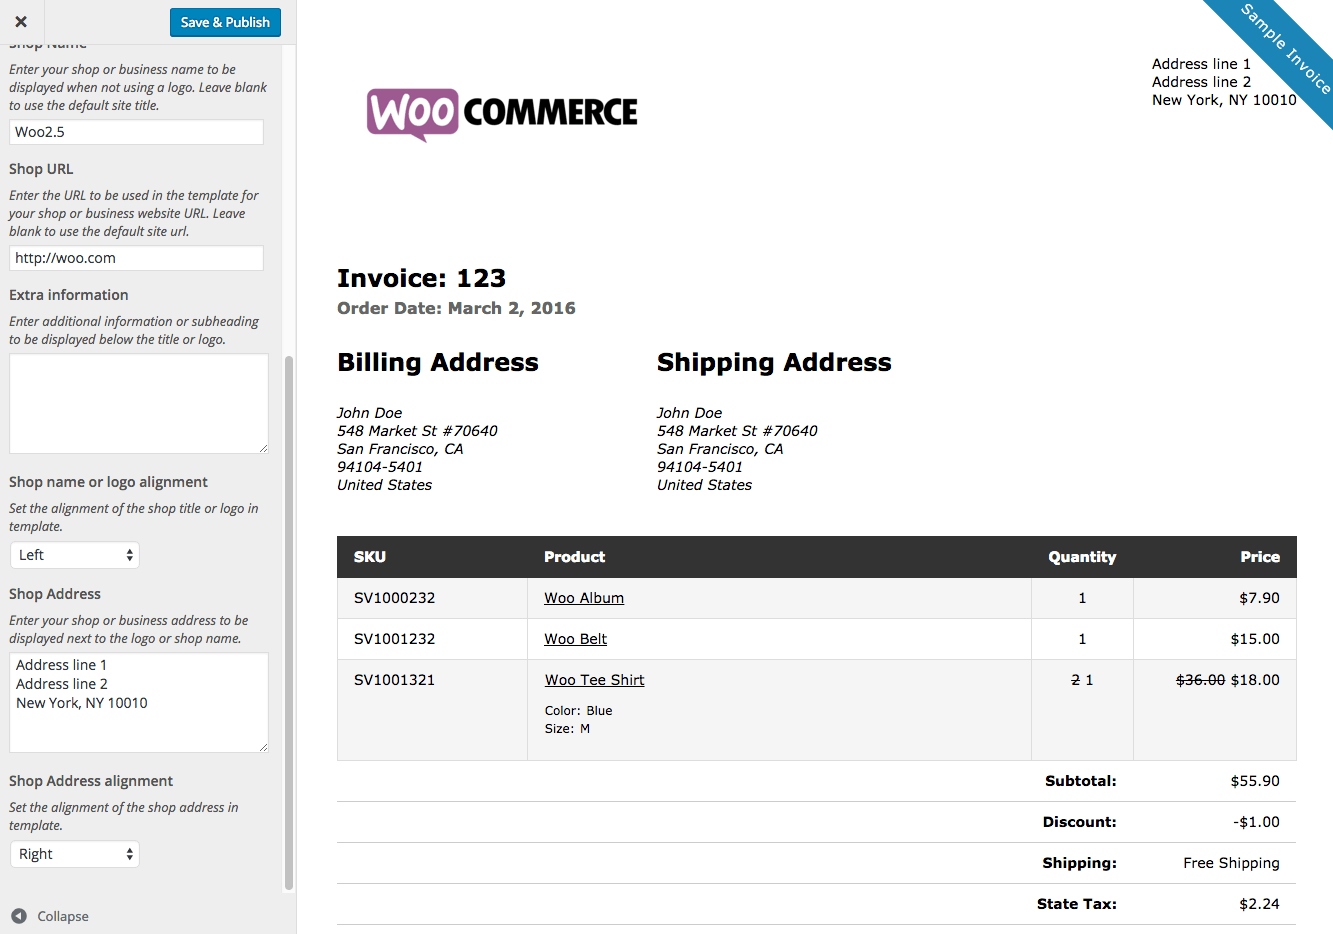 Soulfulpowerus  Gorgeous Woocommerce Print Invoices Amp Packing Lists  Woocommerce Docs With Inspiring Woocommerce Print Invoices  Packing Lists Customizer With Delightful Free Rental Receipt Template Word Also Airline Ticket Receipt In Addition Michigan Gross Receipts Tax And Receipt Coupons As Well As Template For Receipts Additionally Receipt For Selling A Car From Docswoocommercecom With Soulfulpowerus  Inspiring Woocommerce Print Invoices Amp Packing Lists  Woocommerce Docs With Delightful Woocommerce Print Invoices  Packing Lists Customizer And Gorgeous Free Rental Receipt Template Word Also Airline Ticket Receipt In Addition Michigan Gross Receipts Tax From Docswoocommercecom